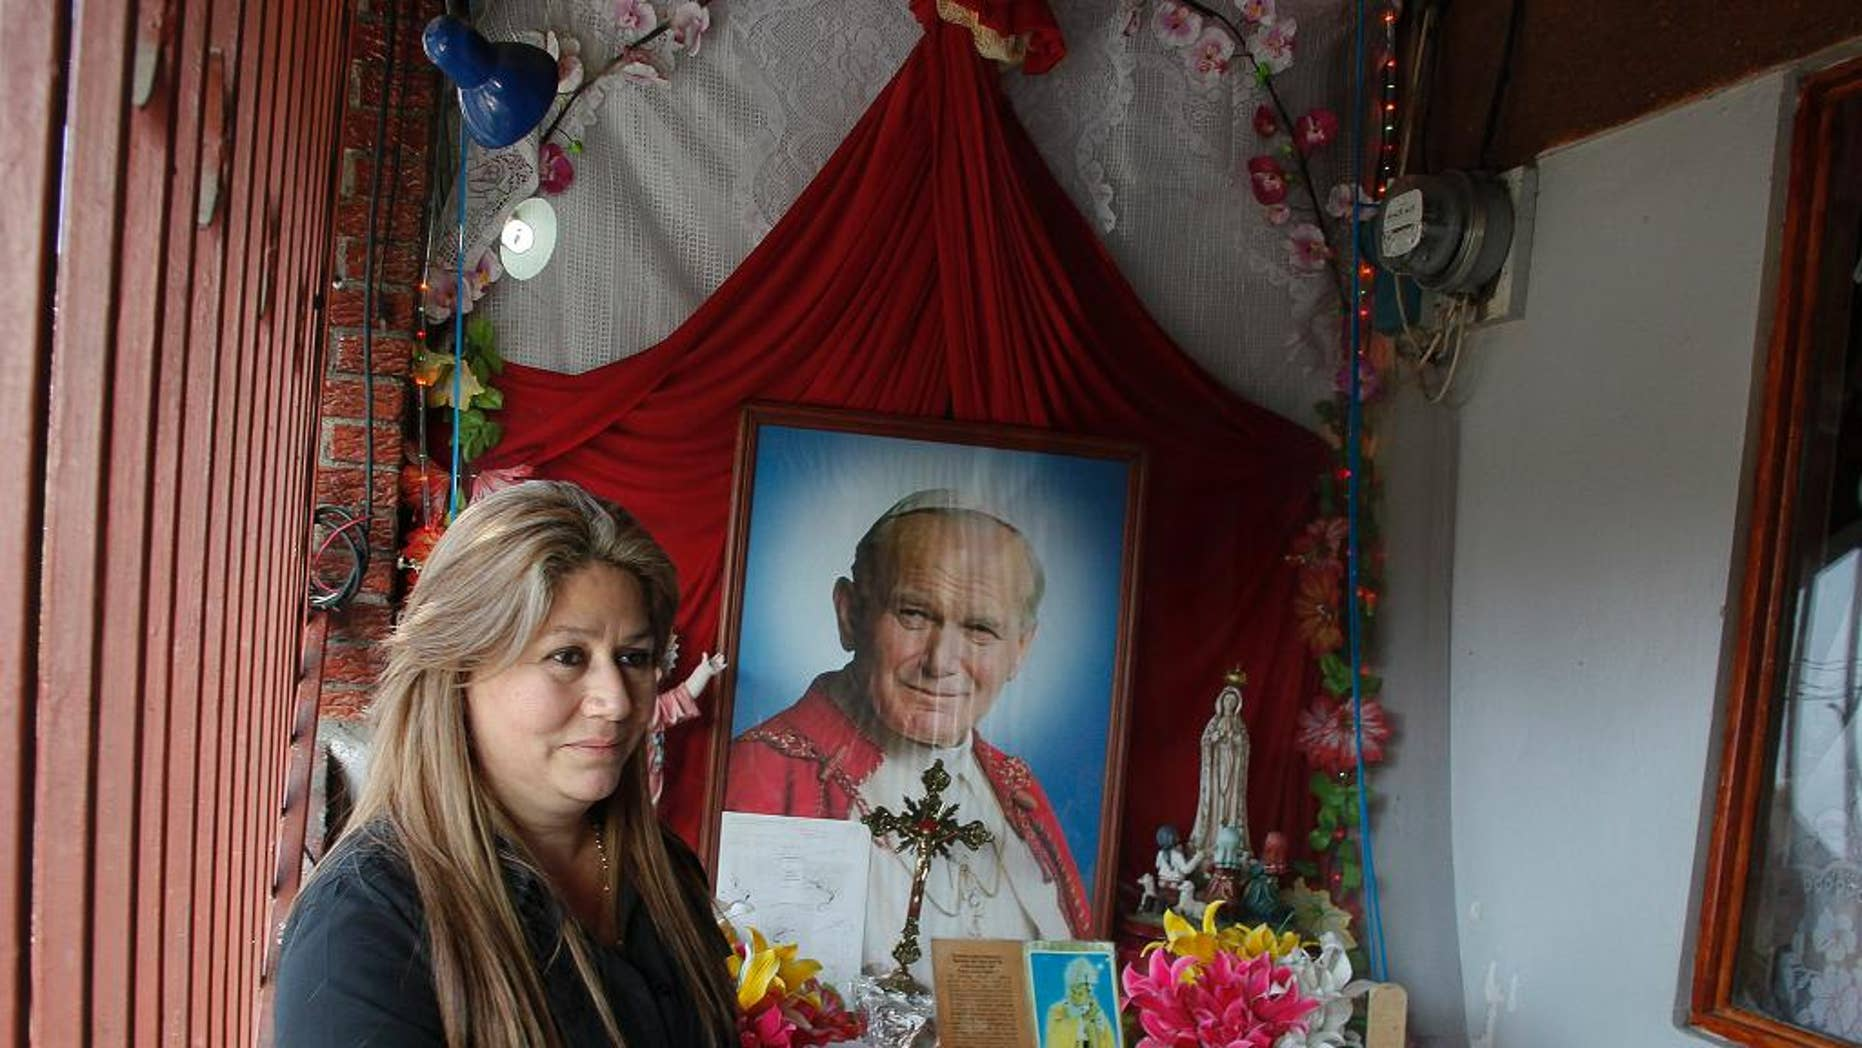 FILE - In this July 5, 2013 file photo, Floribeth Mora stands by her shrine to Pope John Paul II inside the entrance to her home in La Union de Cartago, Costa Rica. Mora, her doctors and the Catholic Church say her aneurysm disappeared in May of 2011 in a miracle that cleared the way for the late pope to be declared a saint. Mora will attend the ceremony at the Vatican on April 27, 2014 as a guest of honor. (AP Photo/Enrique Martinez, File)